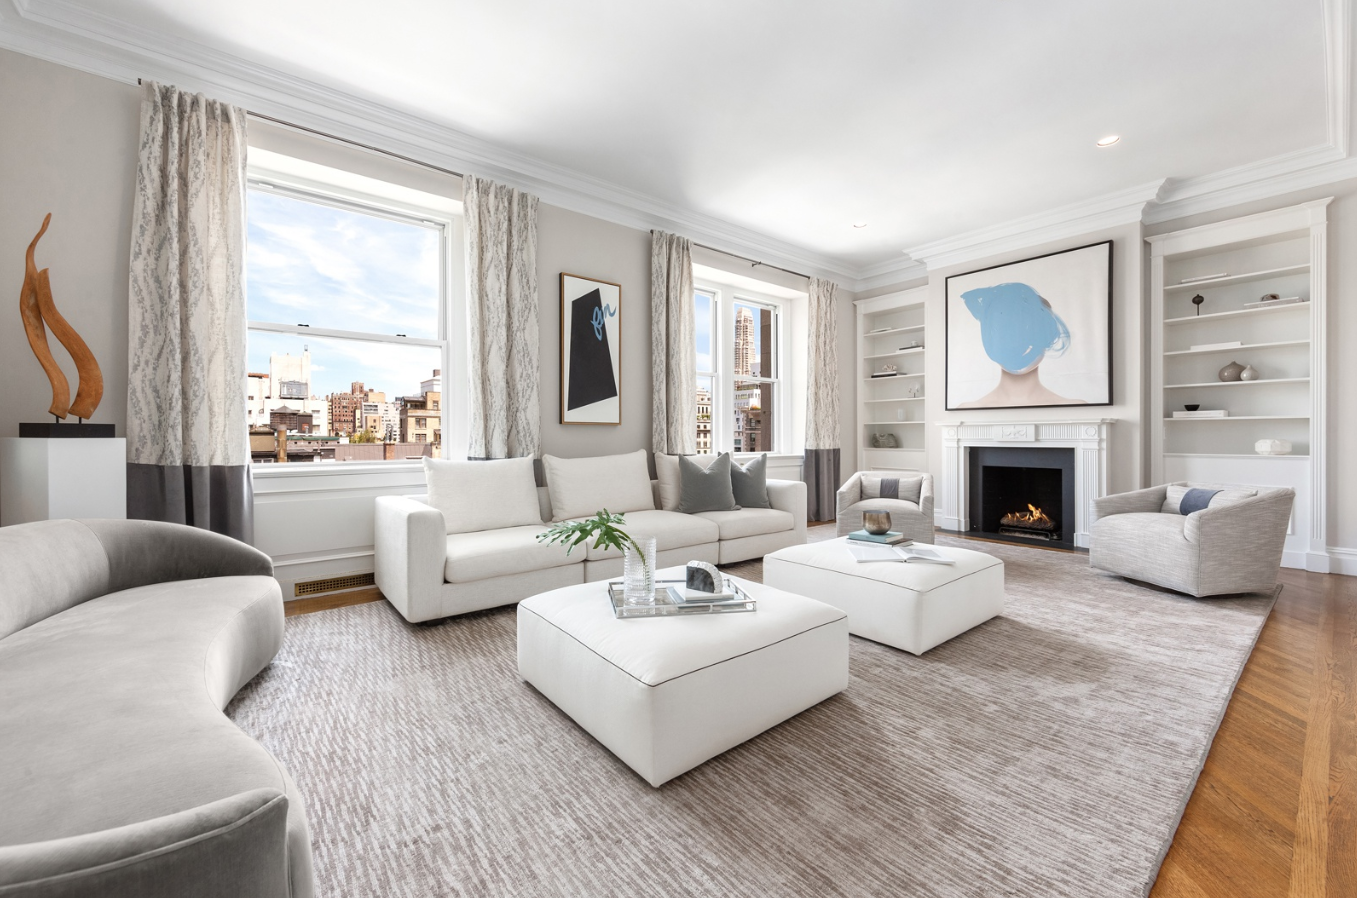 26 EAST 63RD STREET, PHB - $11,999,000 // 5 Beds // 5 Baths // 3,700 SQFT // 800 EXT SQFTA palatial duplex penthouse boasting a rooftop solarium and designer fixtures and finishes, this one-of-a-kind 5-bedroom condo is a paragon of contemporary Lenox Hill luxury. Features of this incredible 4,500 sq. ft. home include gorgeous herringbone hardwood floors, airy 9 to 11 ft. ceilings, chic built-ins and archways, a gas-burning fireplace, and 800 sq. ft. of private outdoor space with breathtaking Central Park and skyline views.